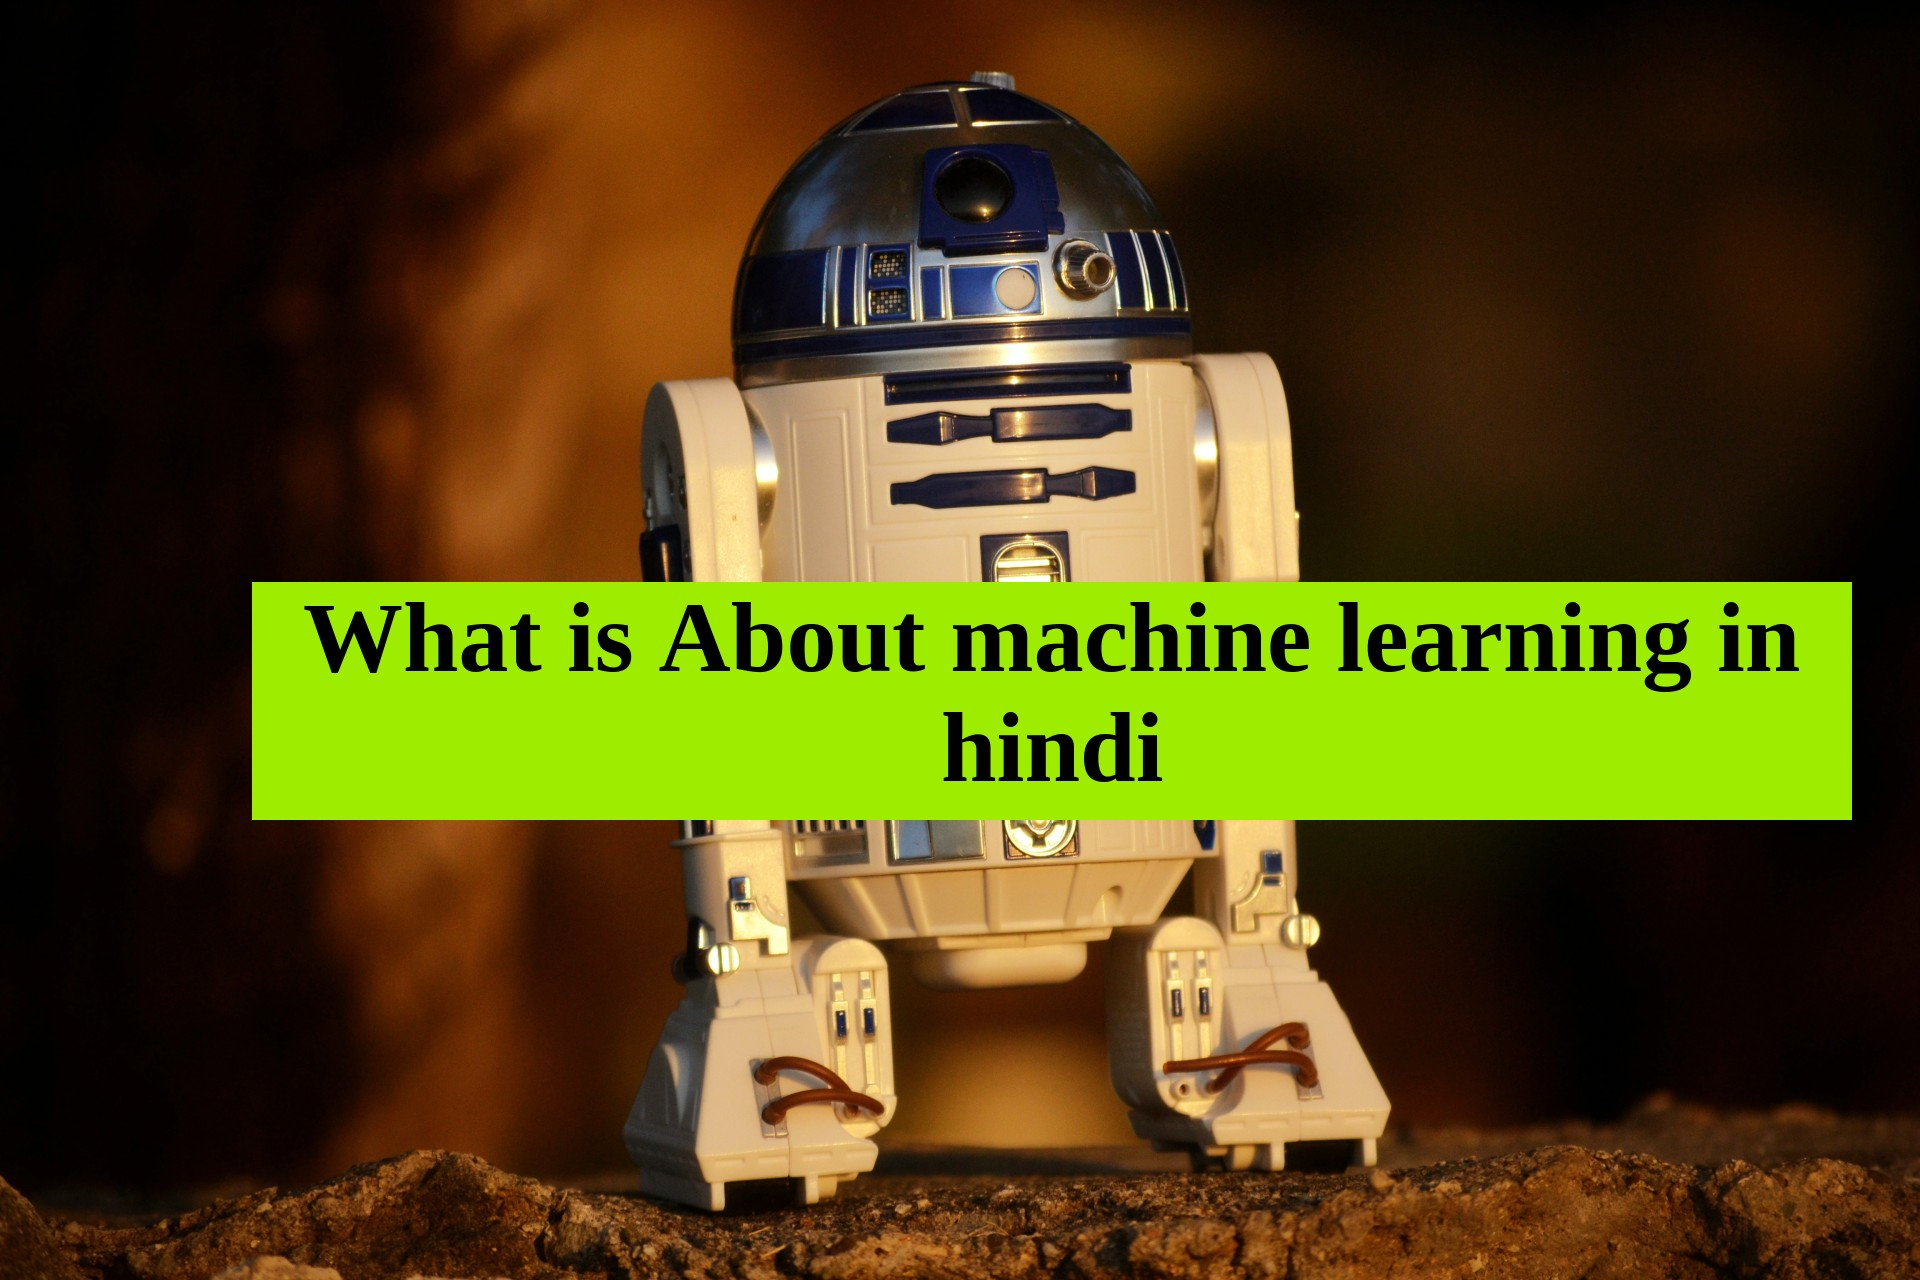 What is About machine learning in hindi